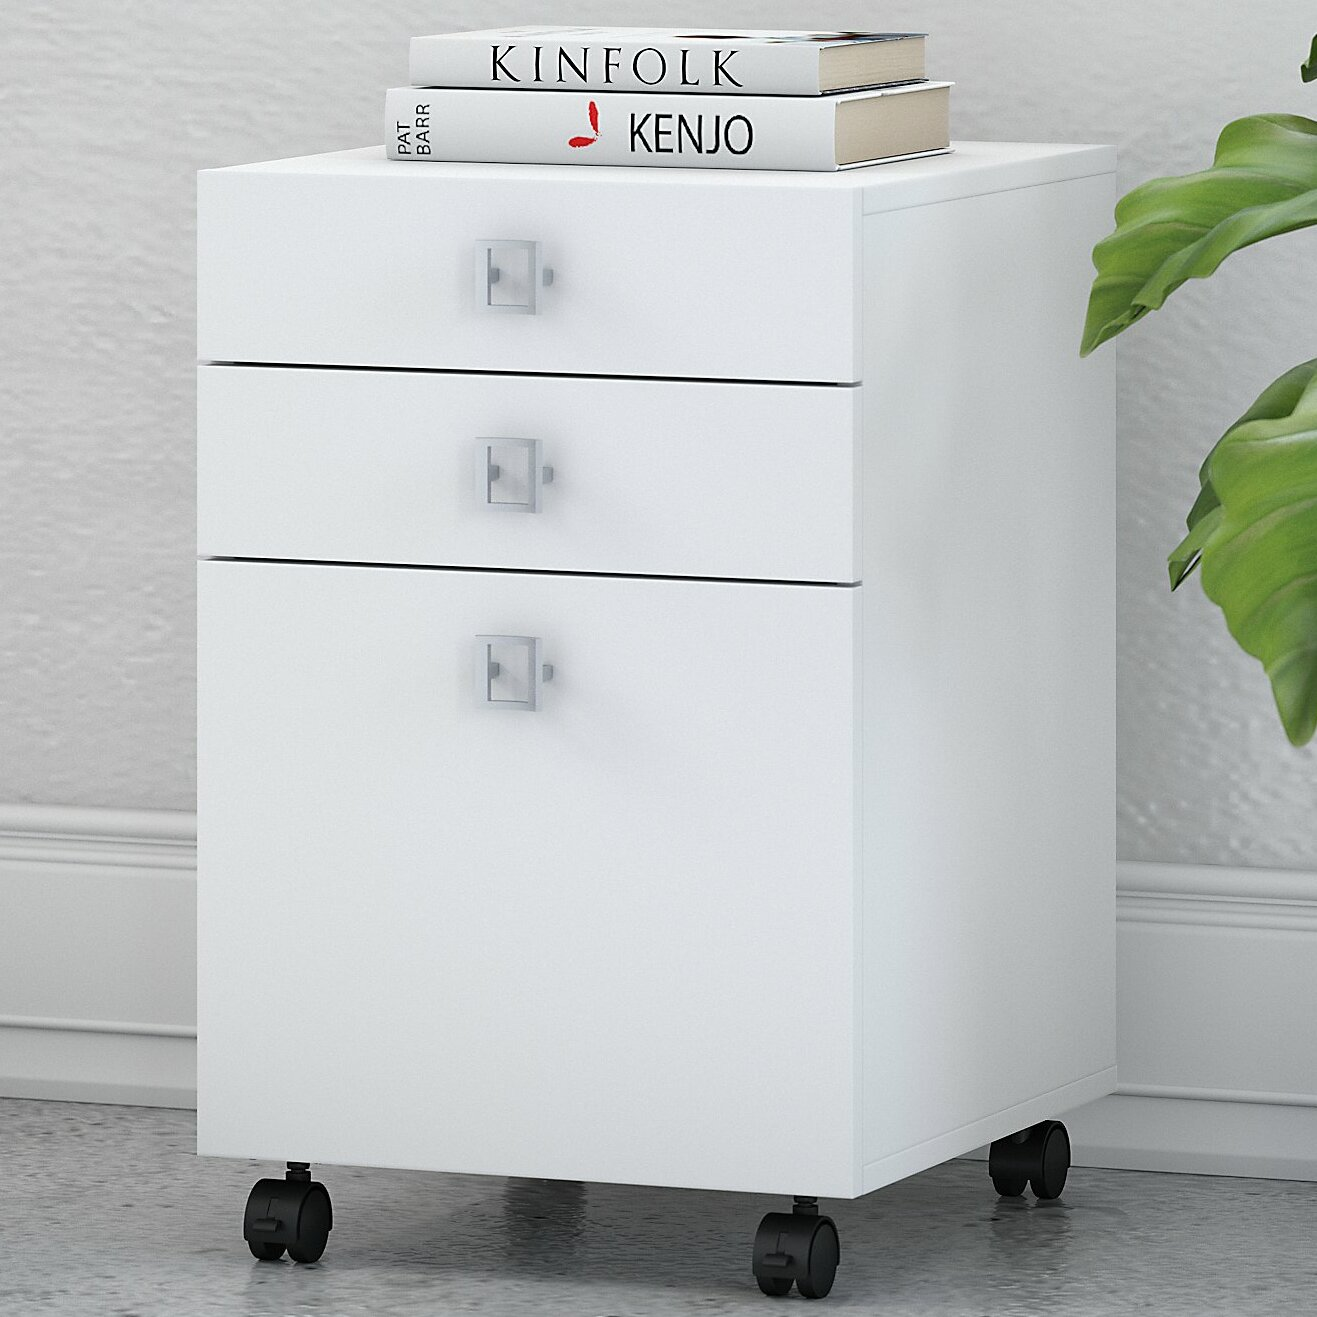 Echo 35-Drawer Mobile Vertical Filing Cabinet